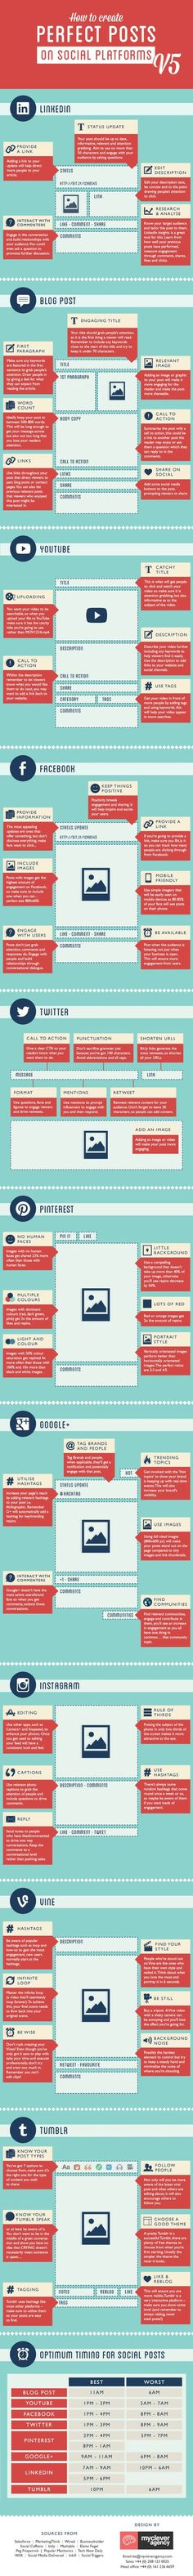 Cheat sheet for creating the best social media campaigns ever http://www.intelisystems.com